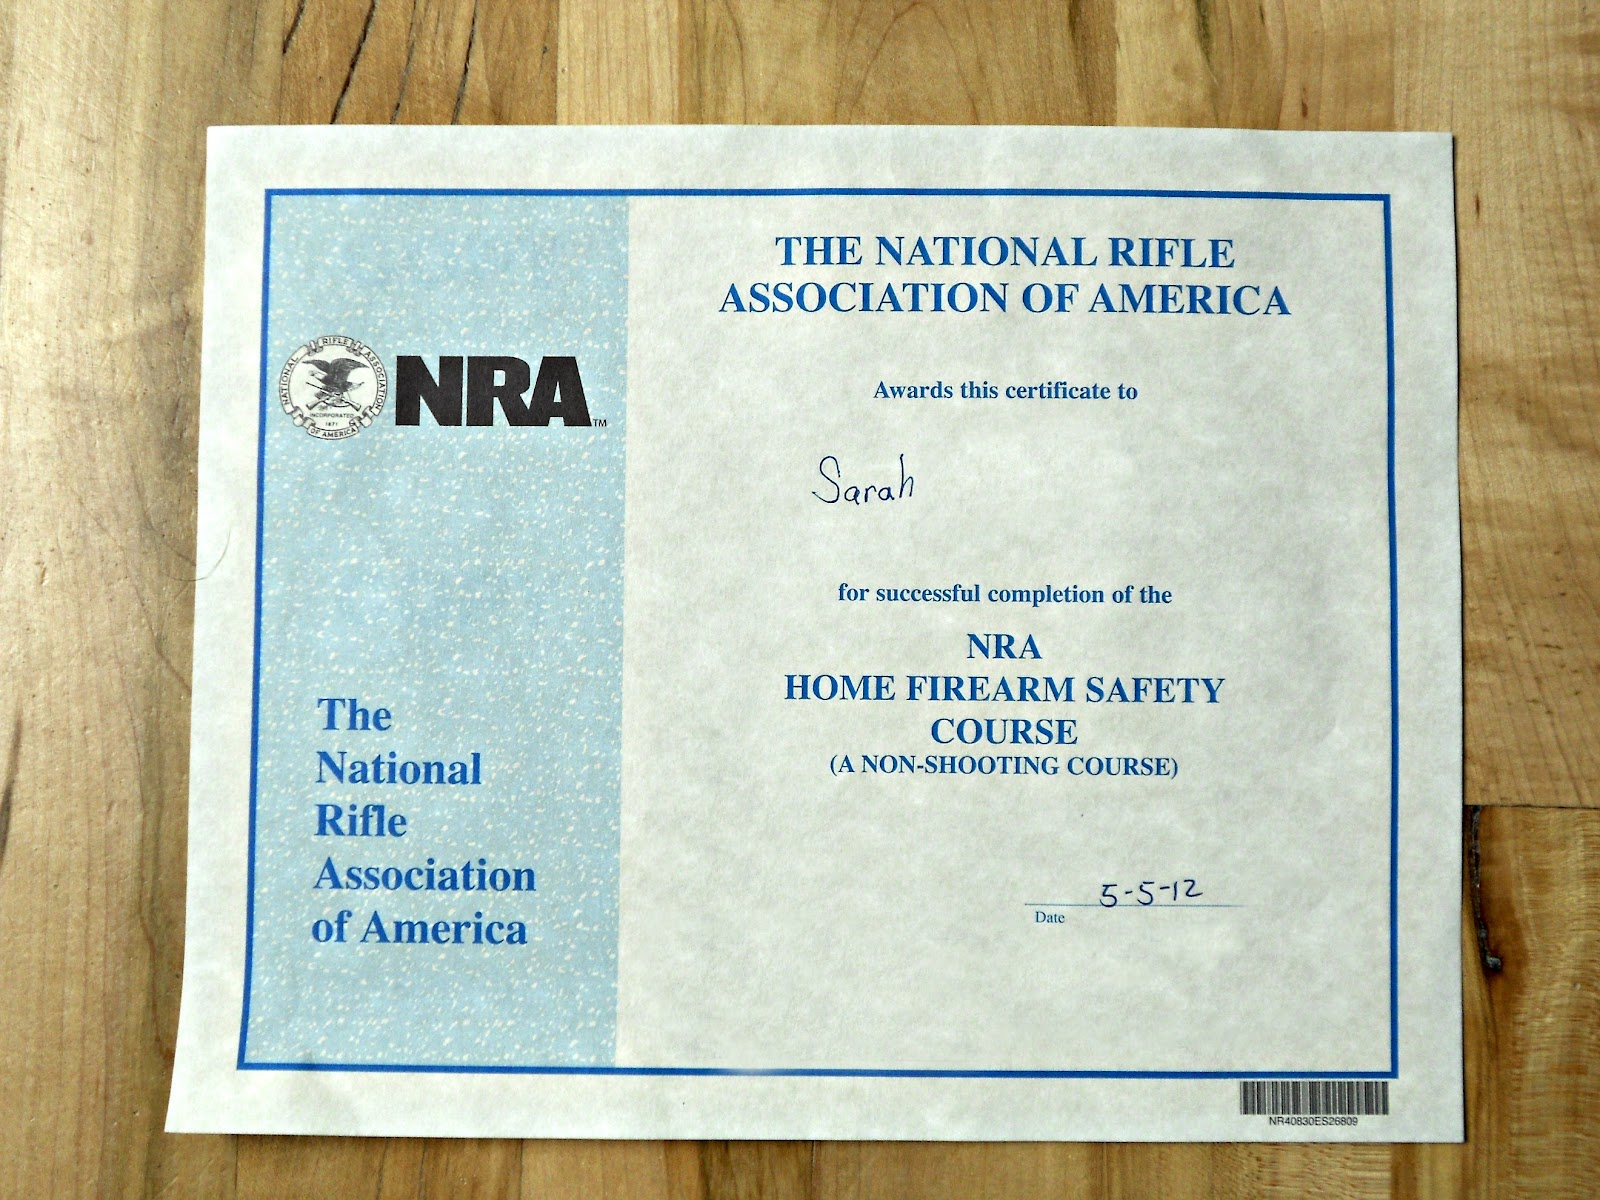 Nra Instructor Editorials From Hells Leading Daily Newspaper